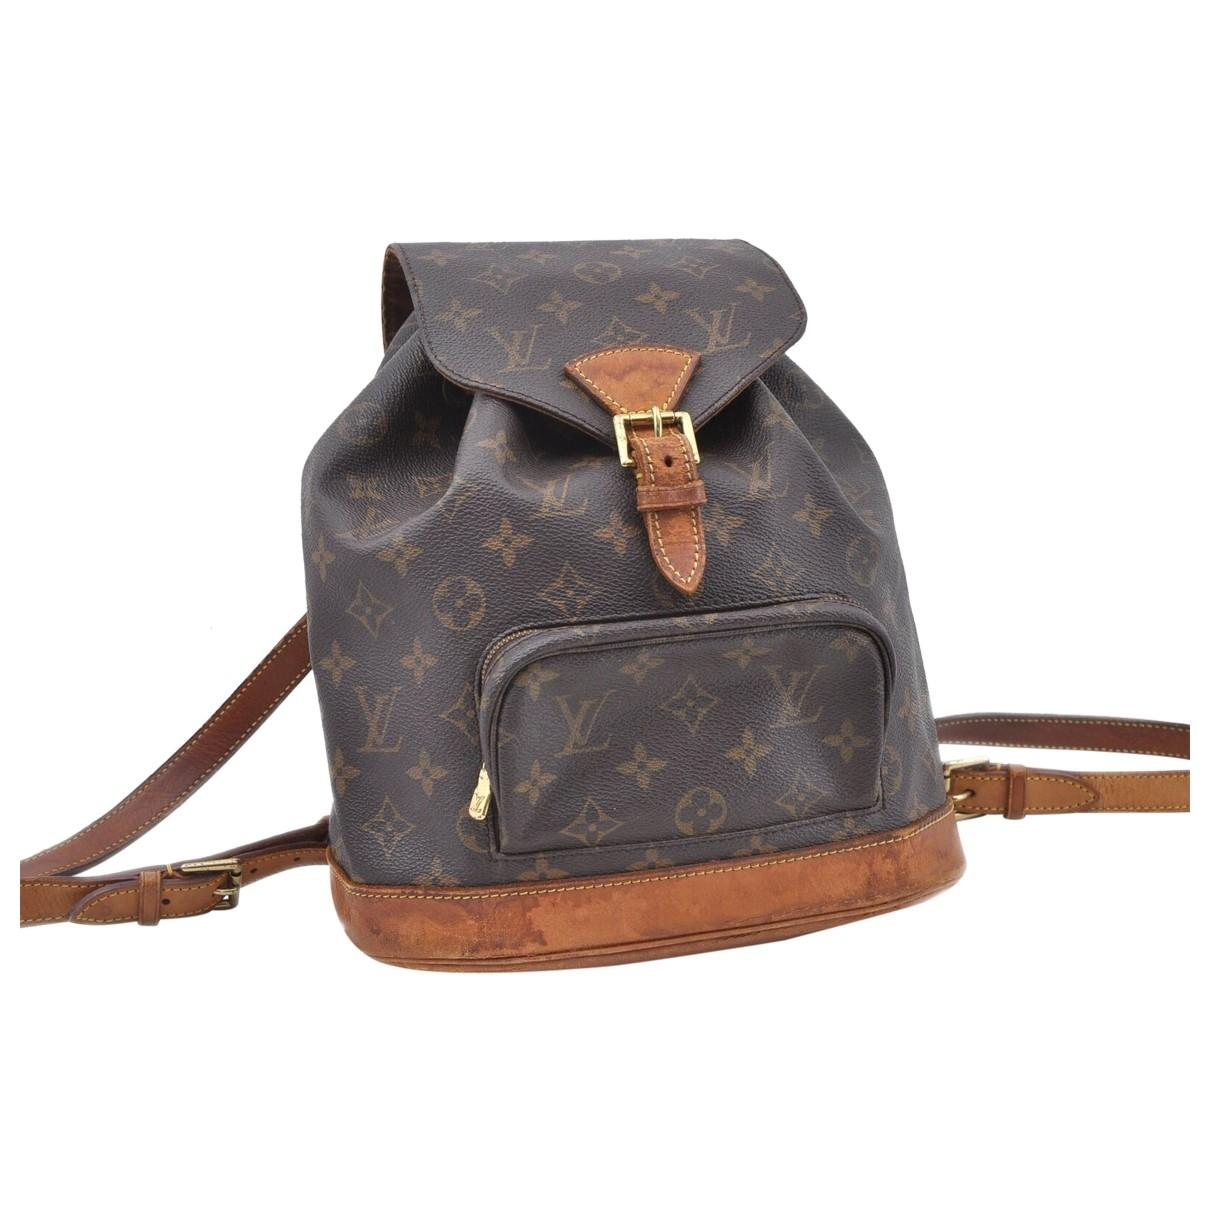 0aa02c1569ed Lyst - Louis Vuitton Montsouris Cloth Backpack in Brown - Save ...